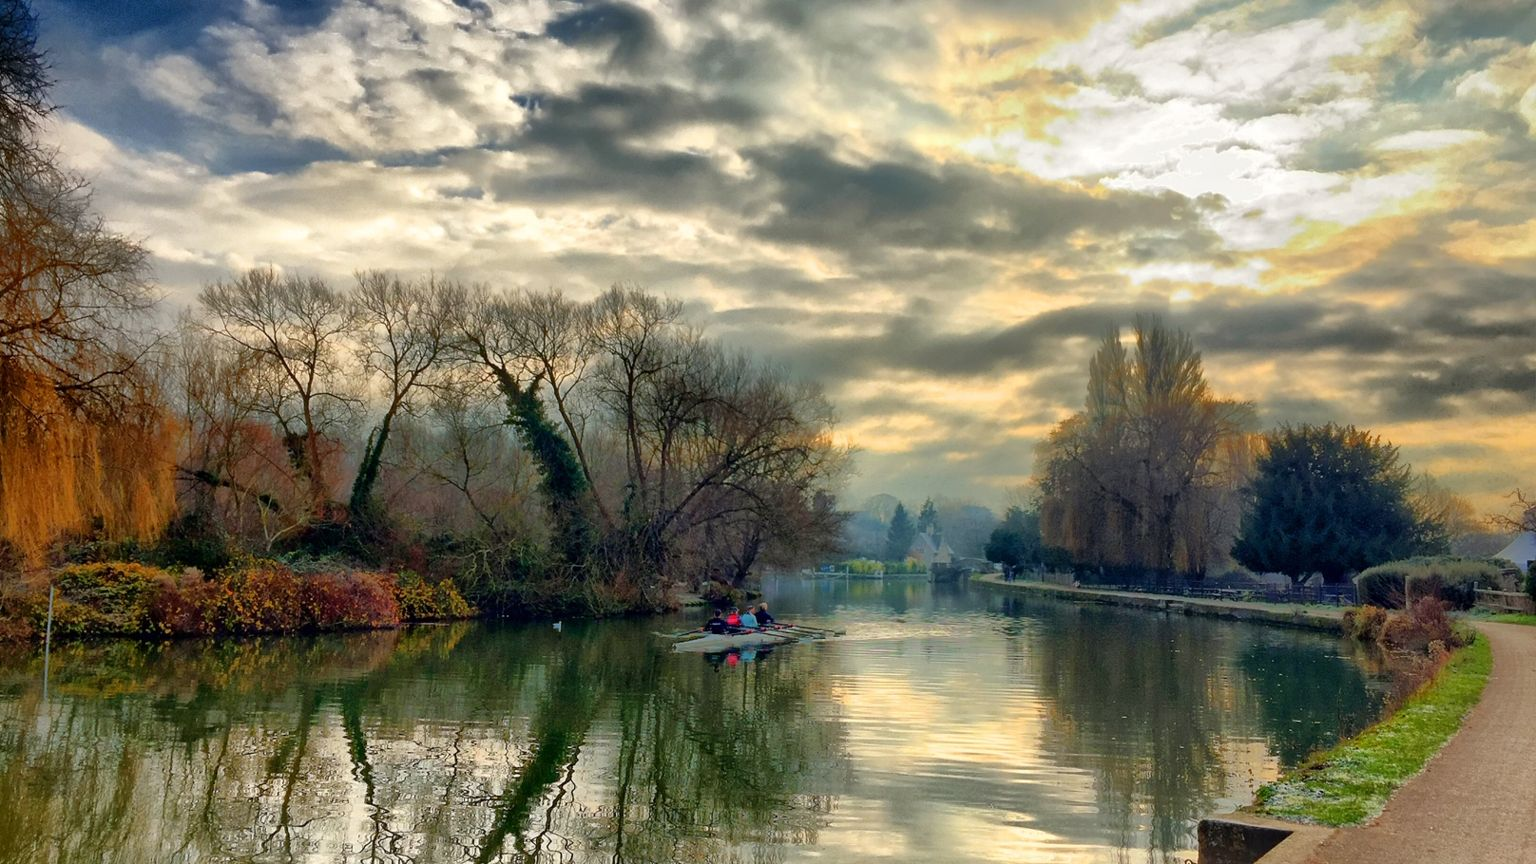 Rowers on the Thames towards Iffley in Oxford